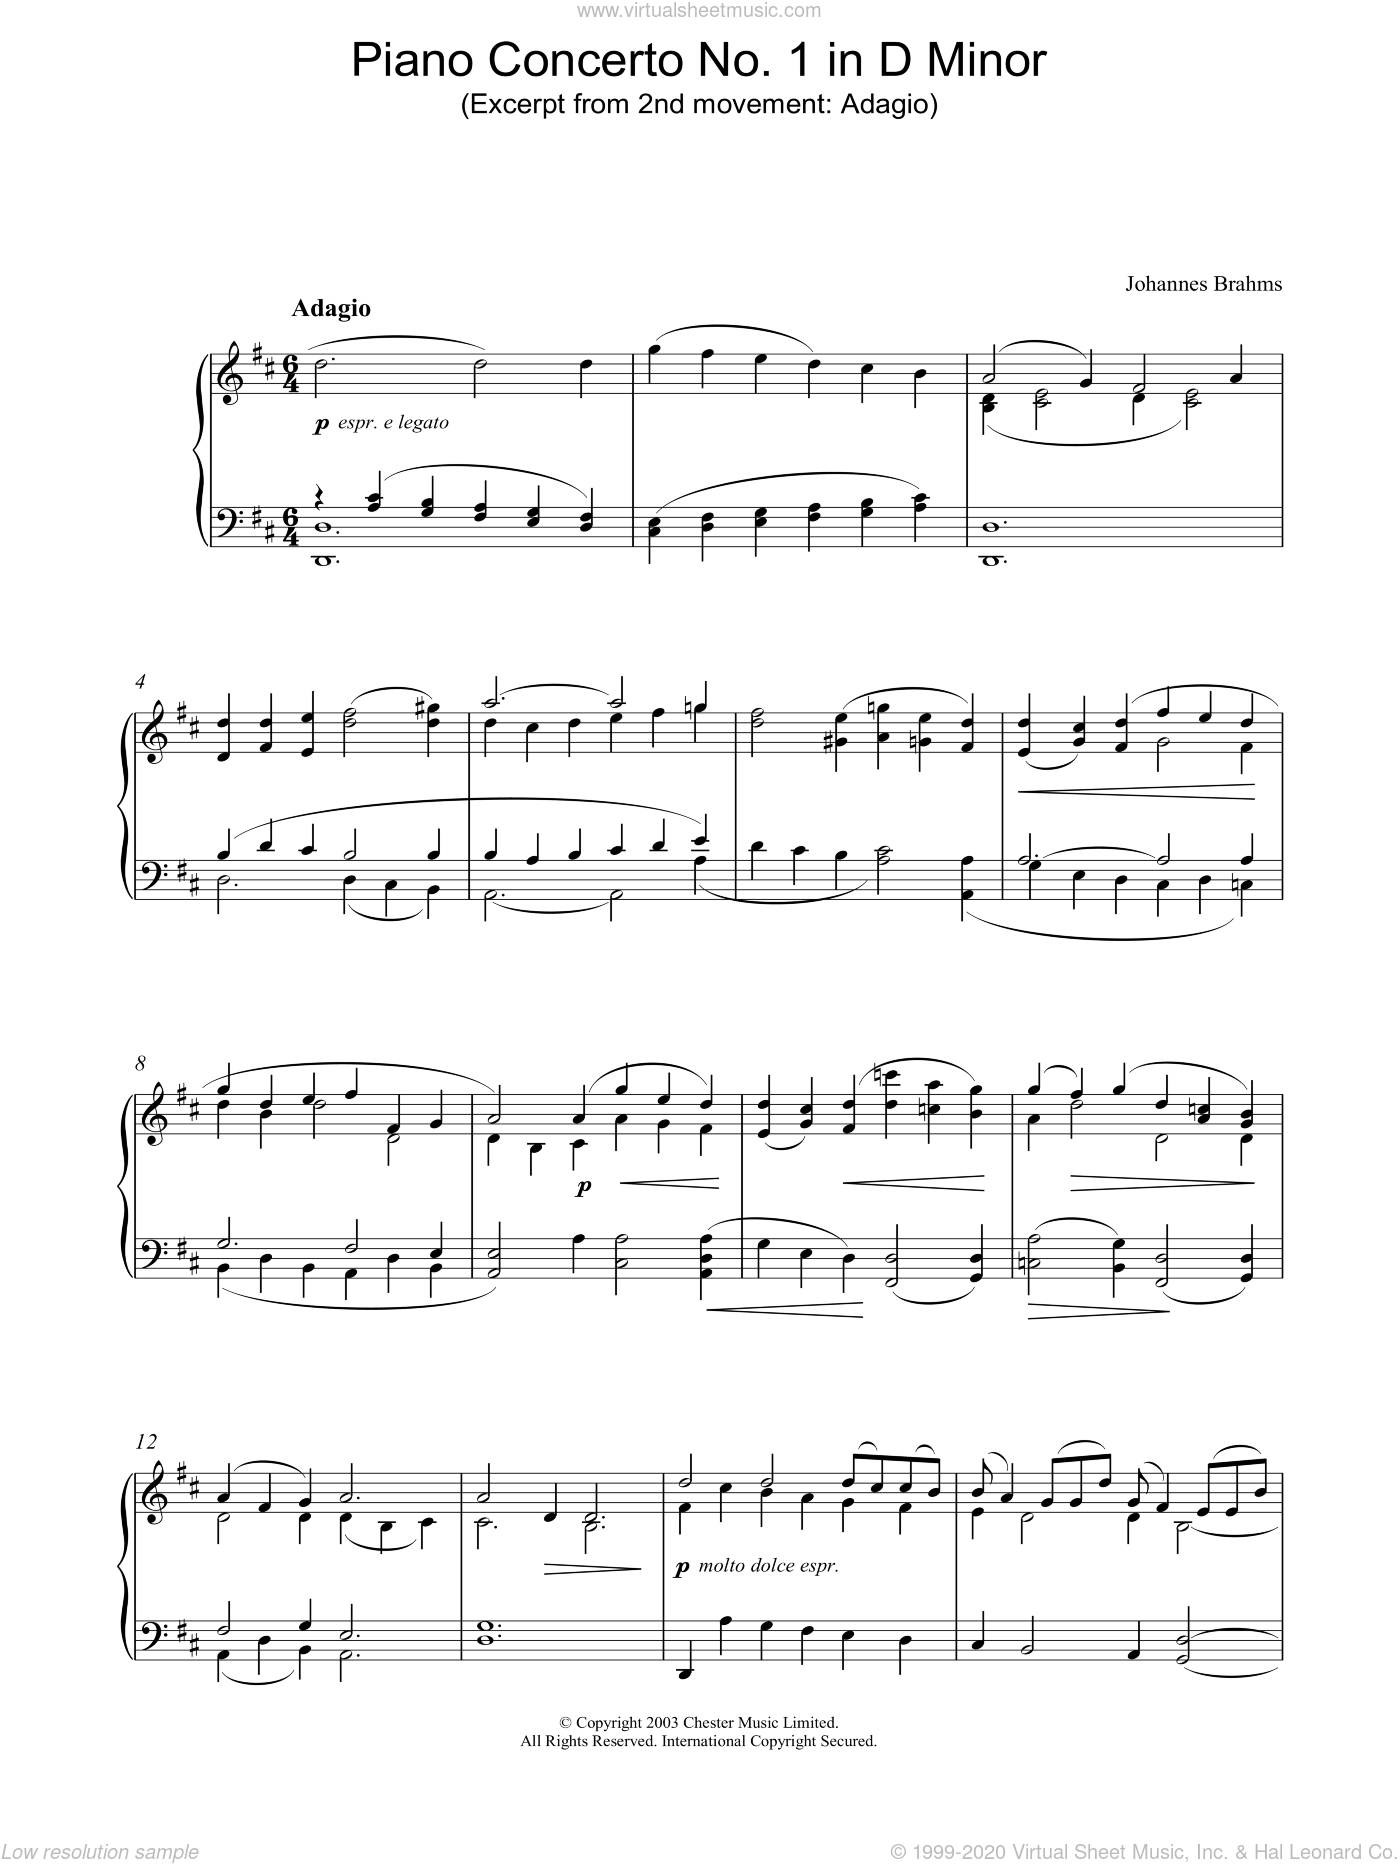 Piano Concerto No. 1 in D Minor (Excerpt from 2nd movement: Adagio) sheet music for piano solo by Johannes Brahms